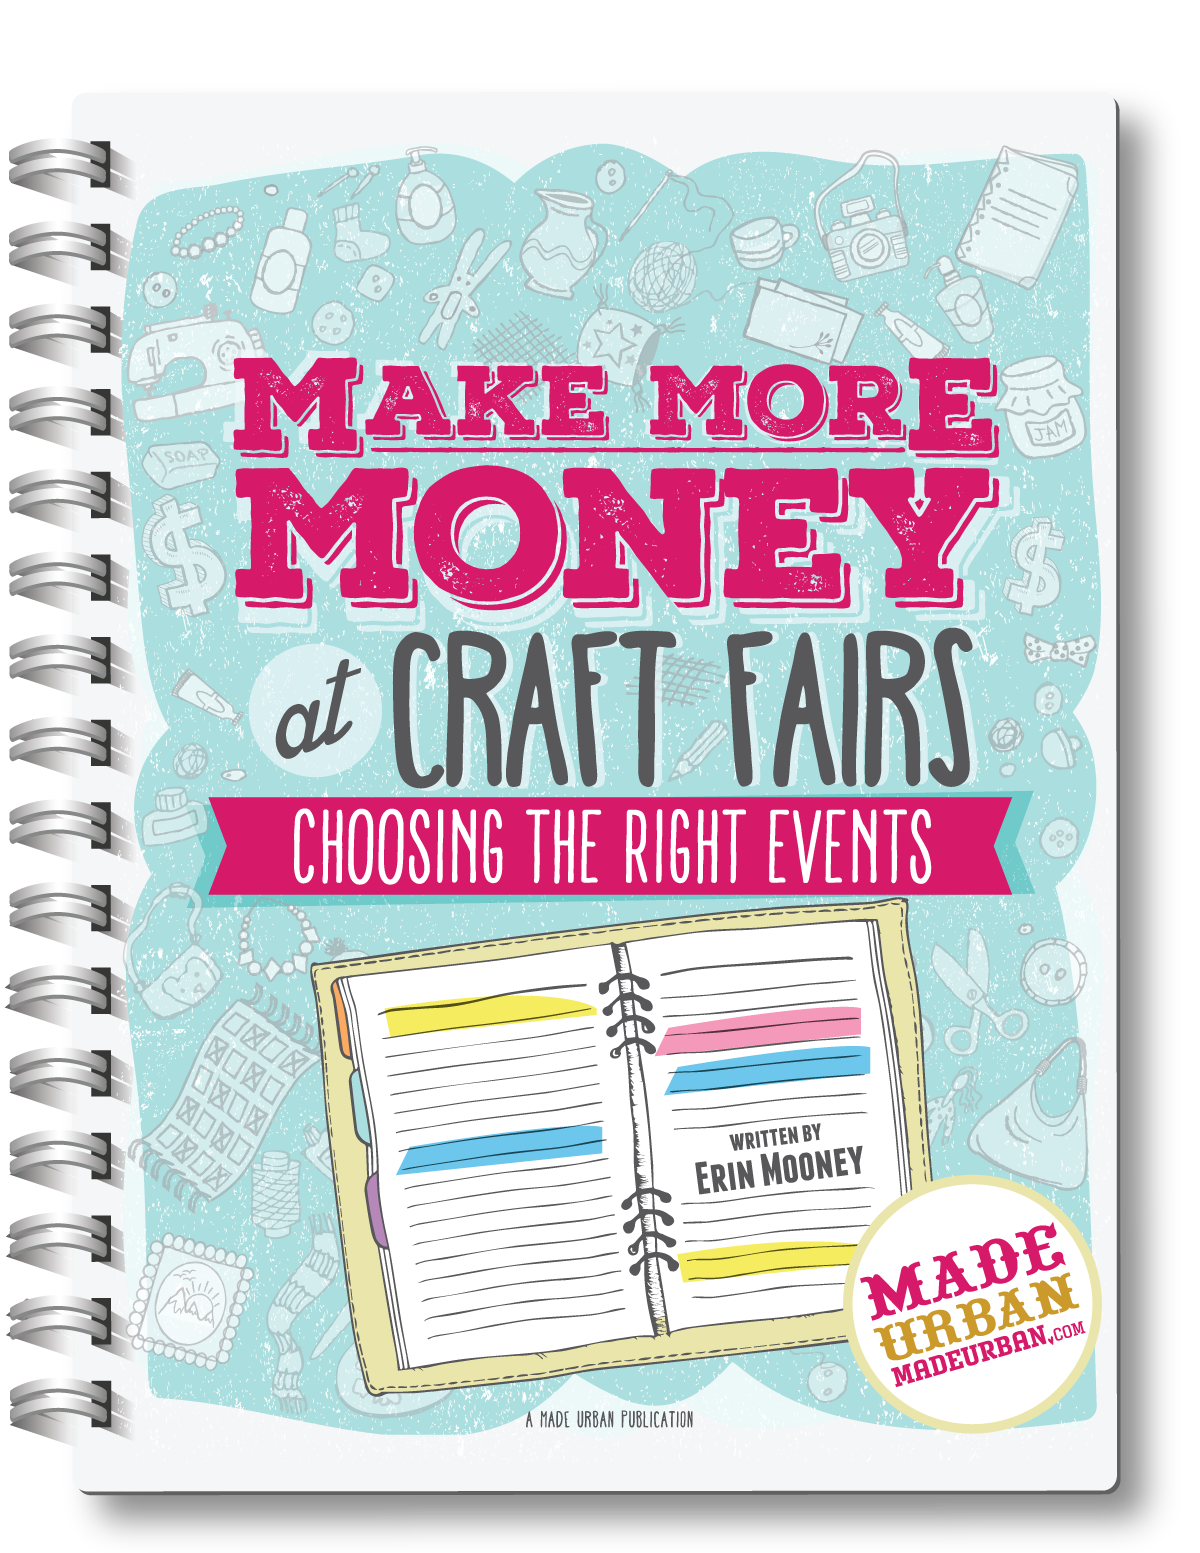 Popular events don't necessarily mean they're the right event for your business and you're guaranteed to make money. The more time and money you spend preparing for and selling at a craft fair, the more you have to lose. So it's best to be sure you choose the RIGHT craft fairs. Here's how...